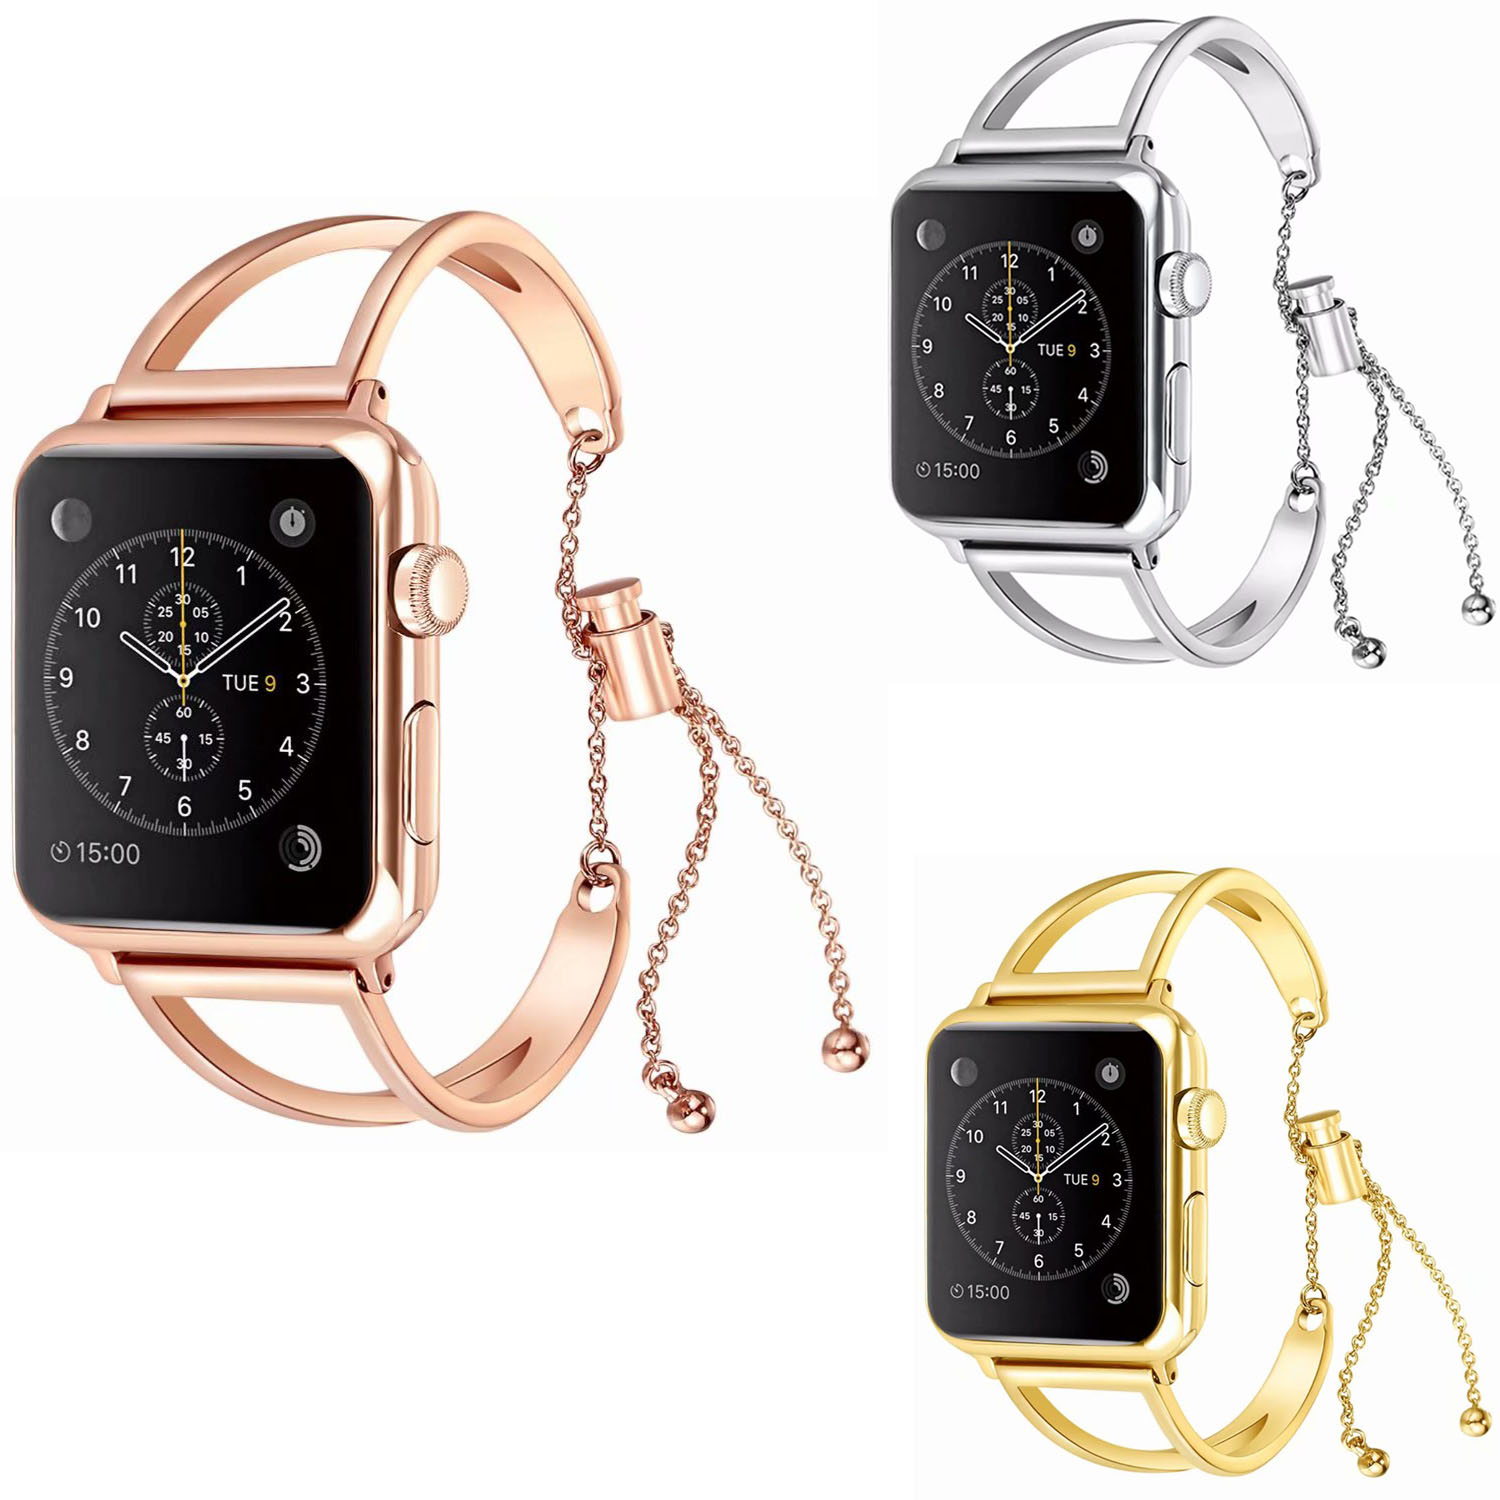 Women Watch Bracelet for Apple Watch Bands 38mm 42mm Adjustable Stainless Steel Strap with Pendant for iWatch Series 3 2 1